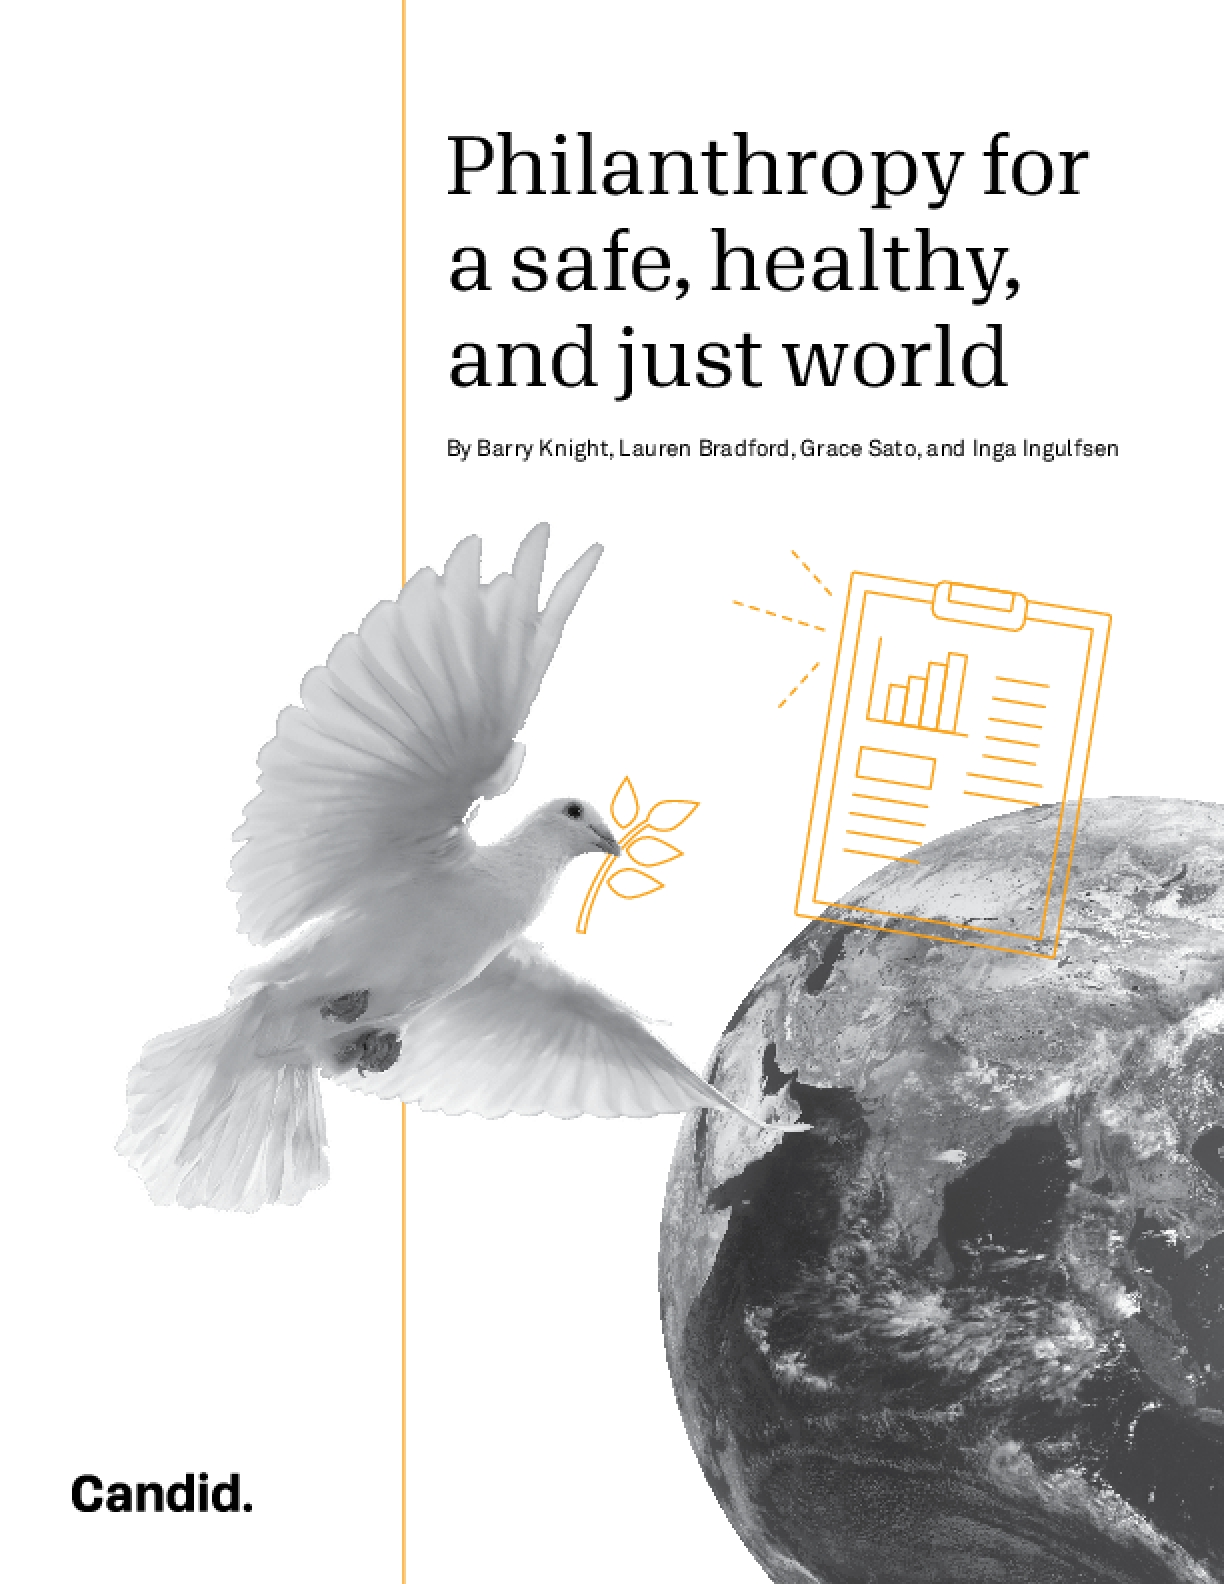 Philanthropy for a safe, healthy, and just world